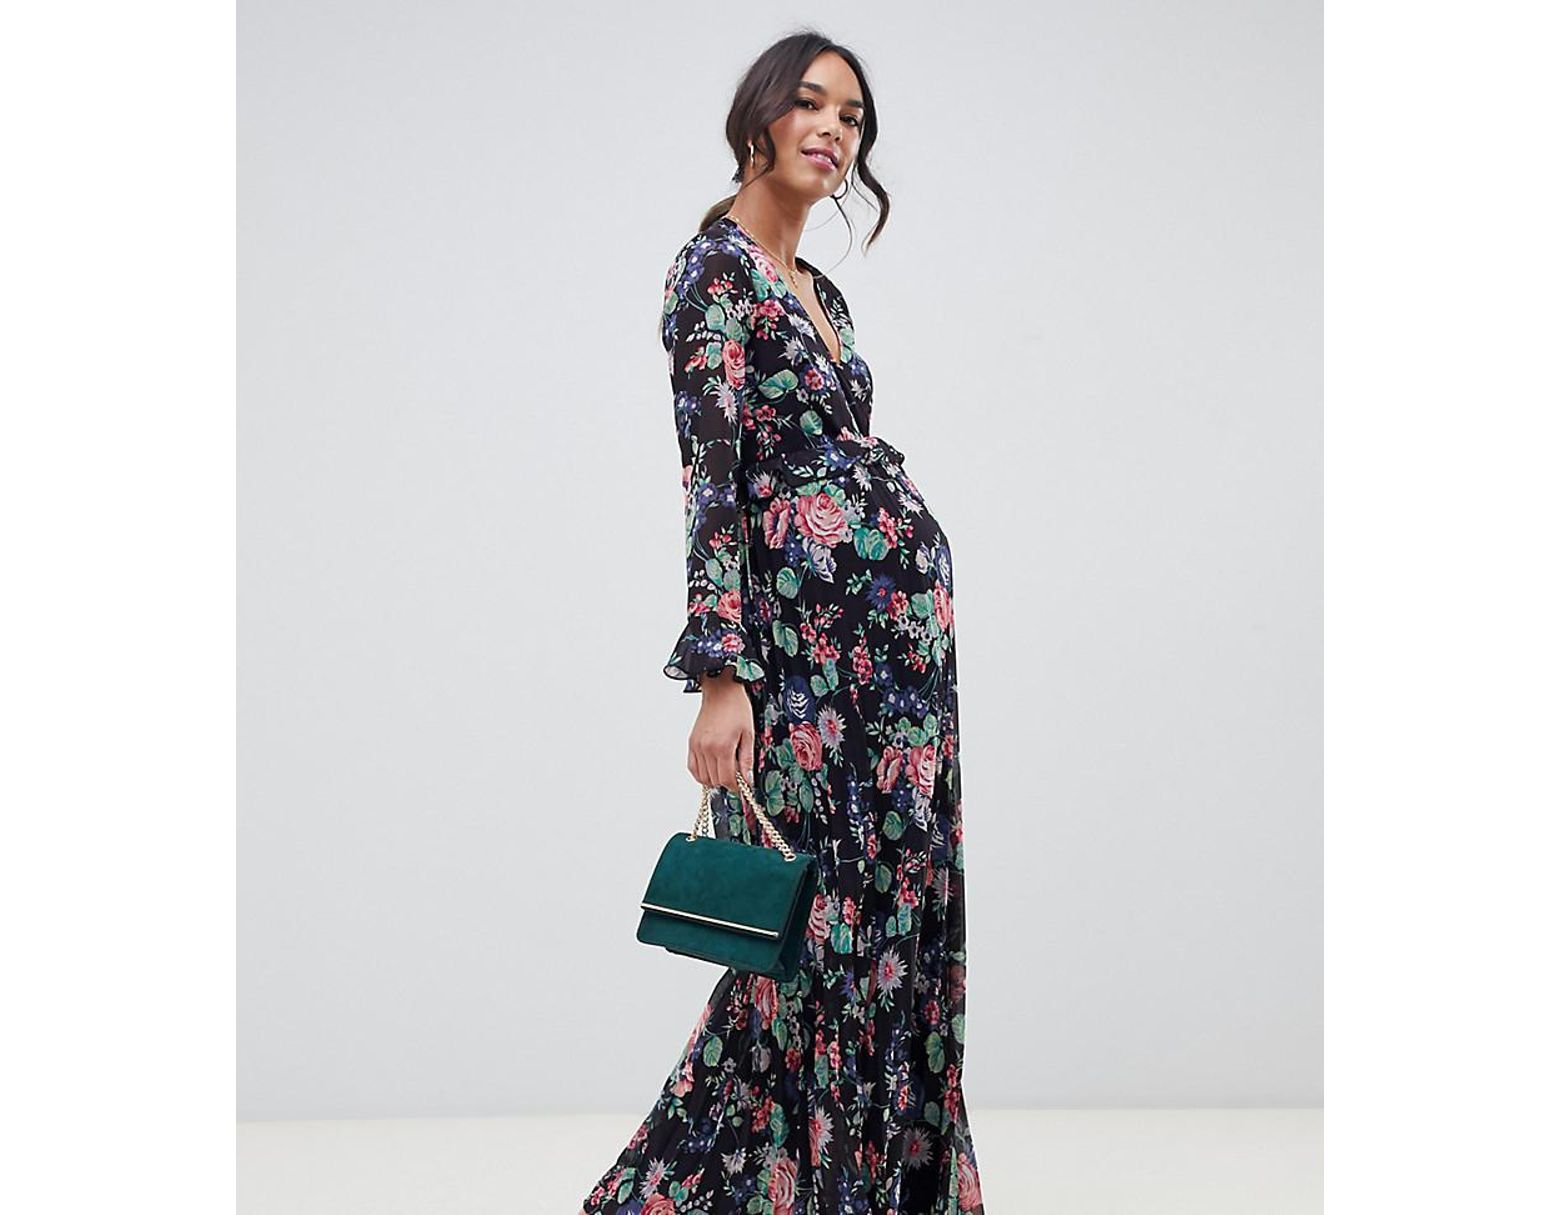 51e9c35261 ASOS Asos Design Maternity Pleated Wrap Maxi Dress With Ruffle In Floral  Print in Blue - Lyst